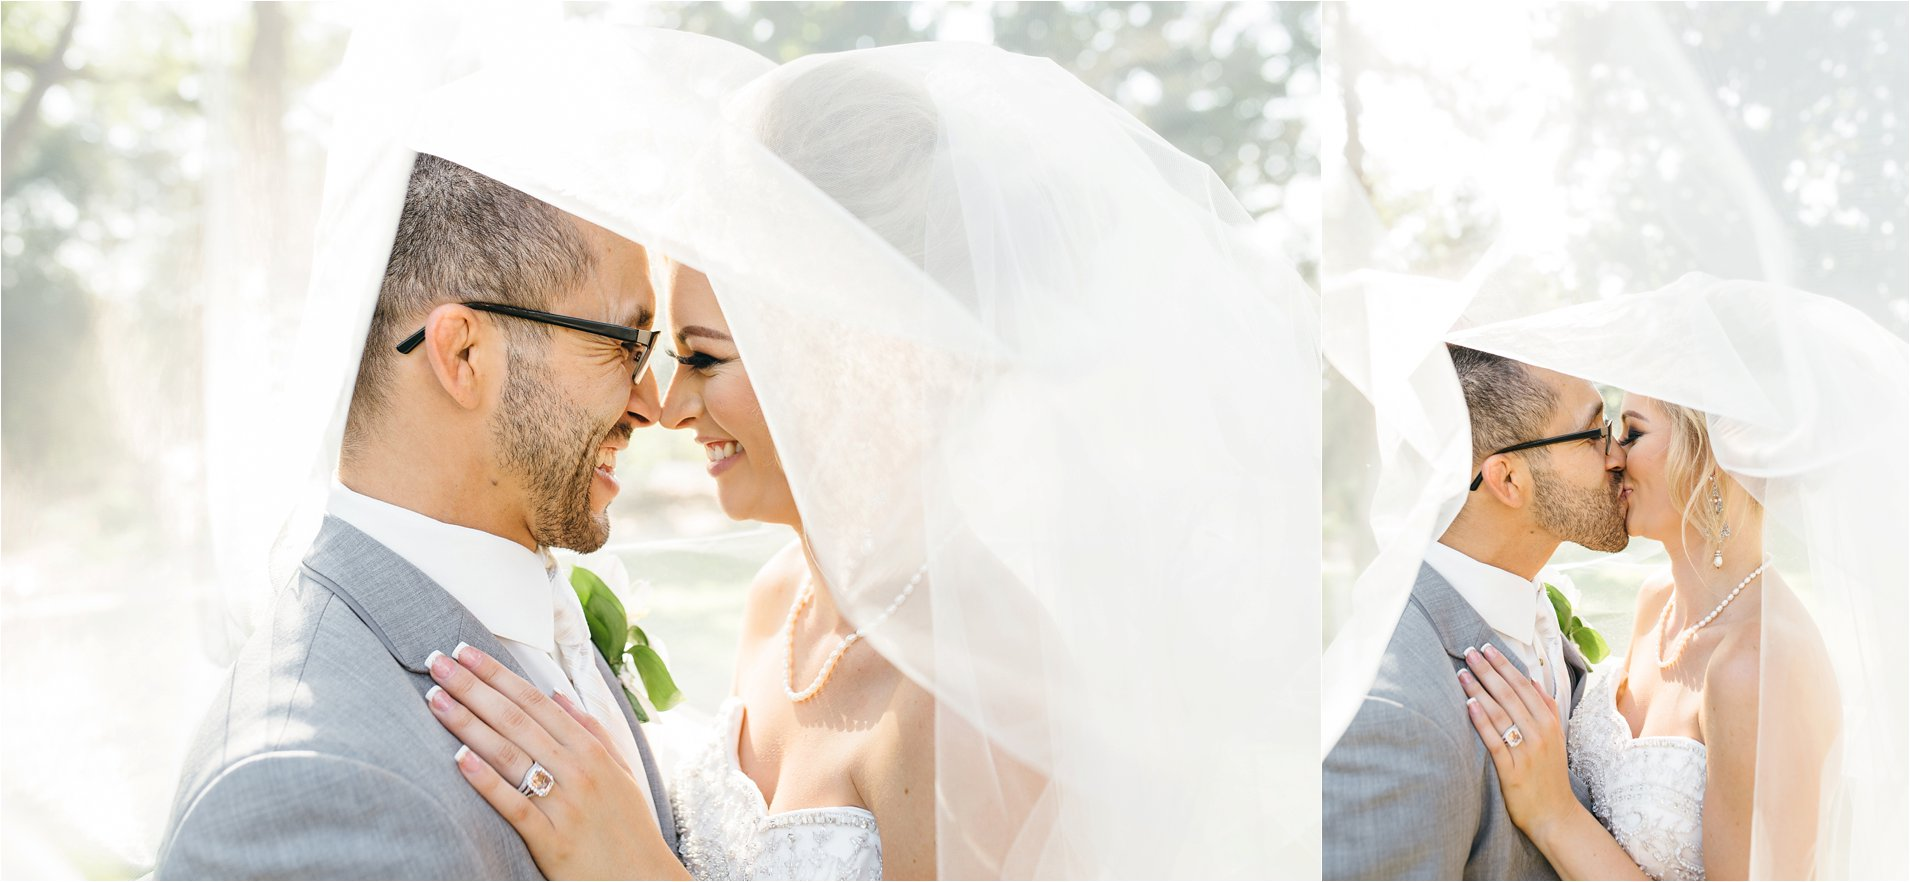 Bride and Groom Veil Photos - Redlands Wedding Photographer